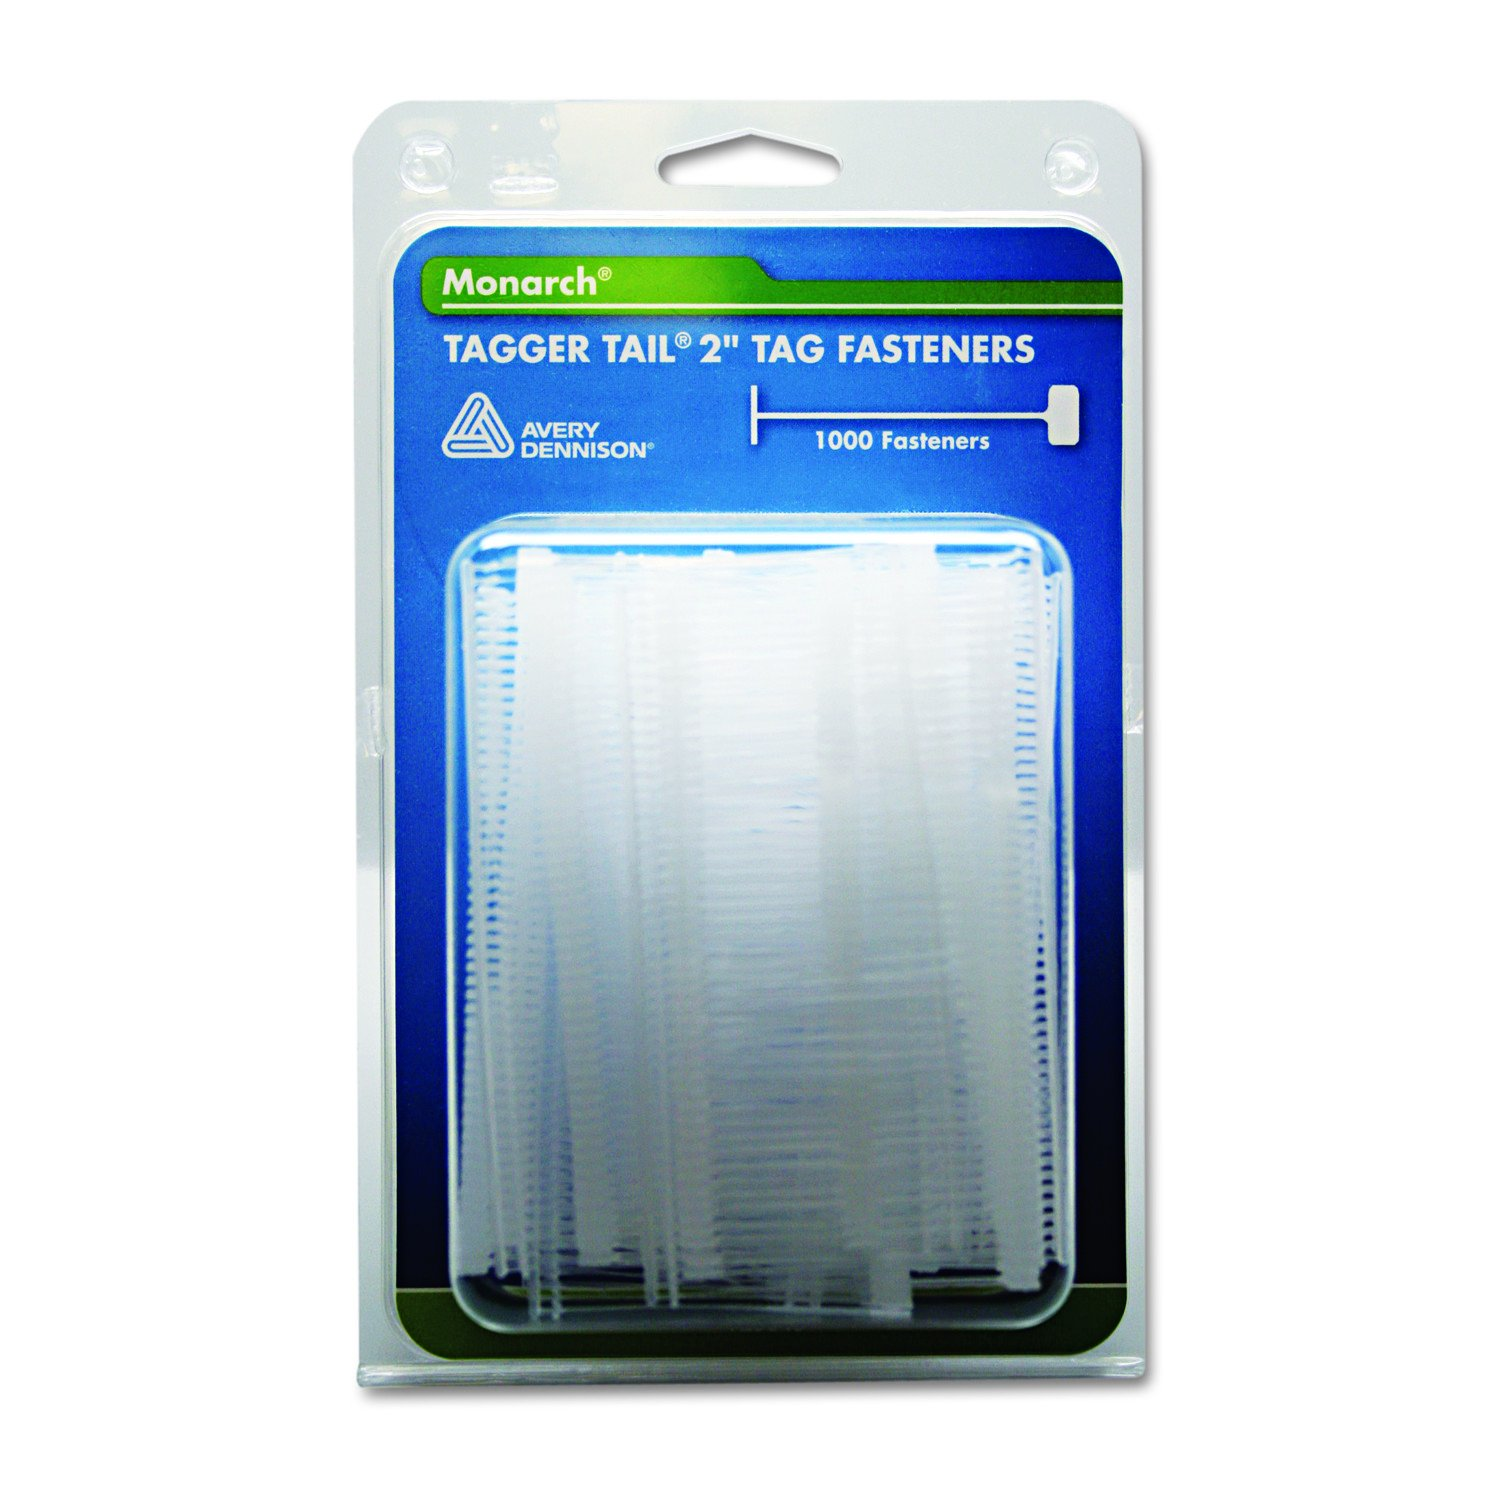 Monarch 925045 Tagger Tail 2'' Tag Fasteners for SG Tag Attacher Kit (Pack of 1,000)